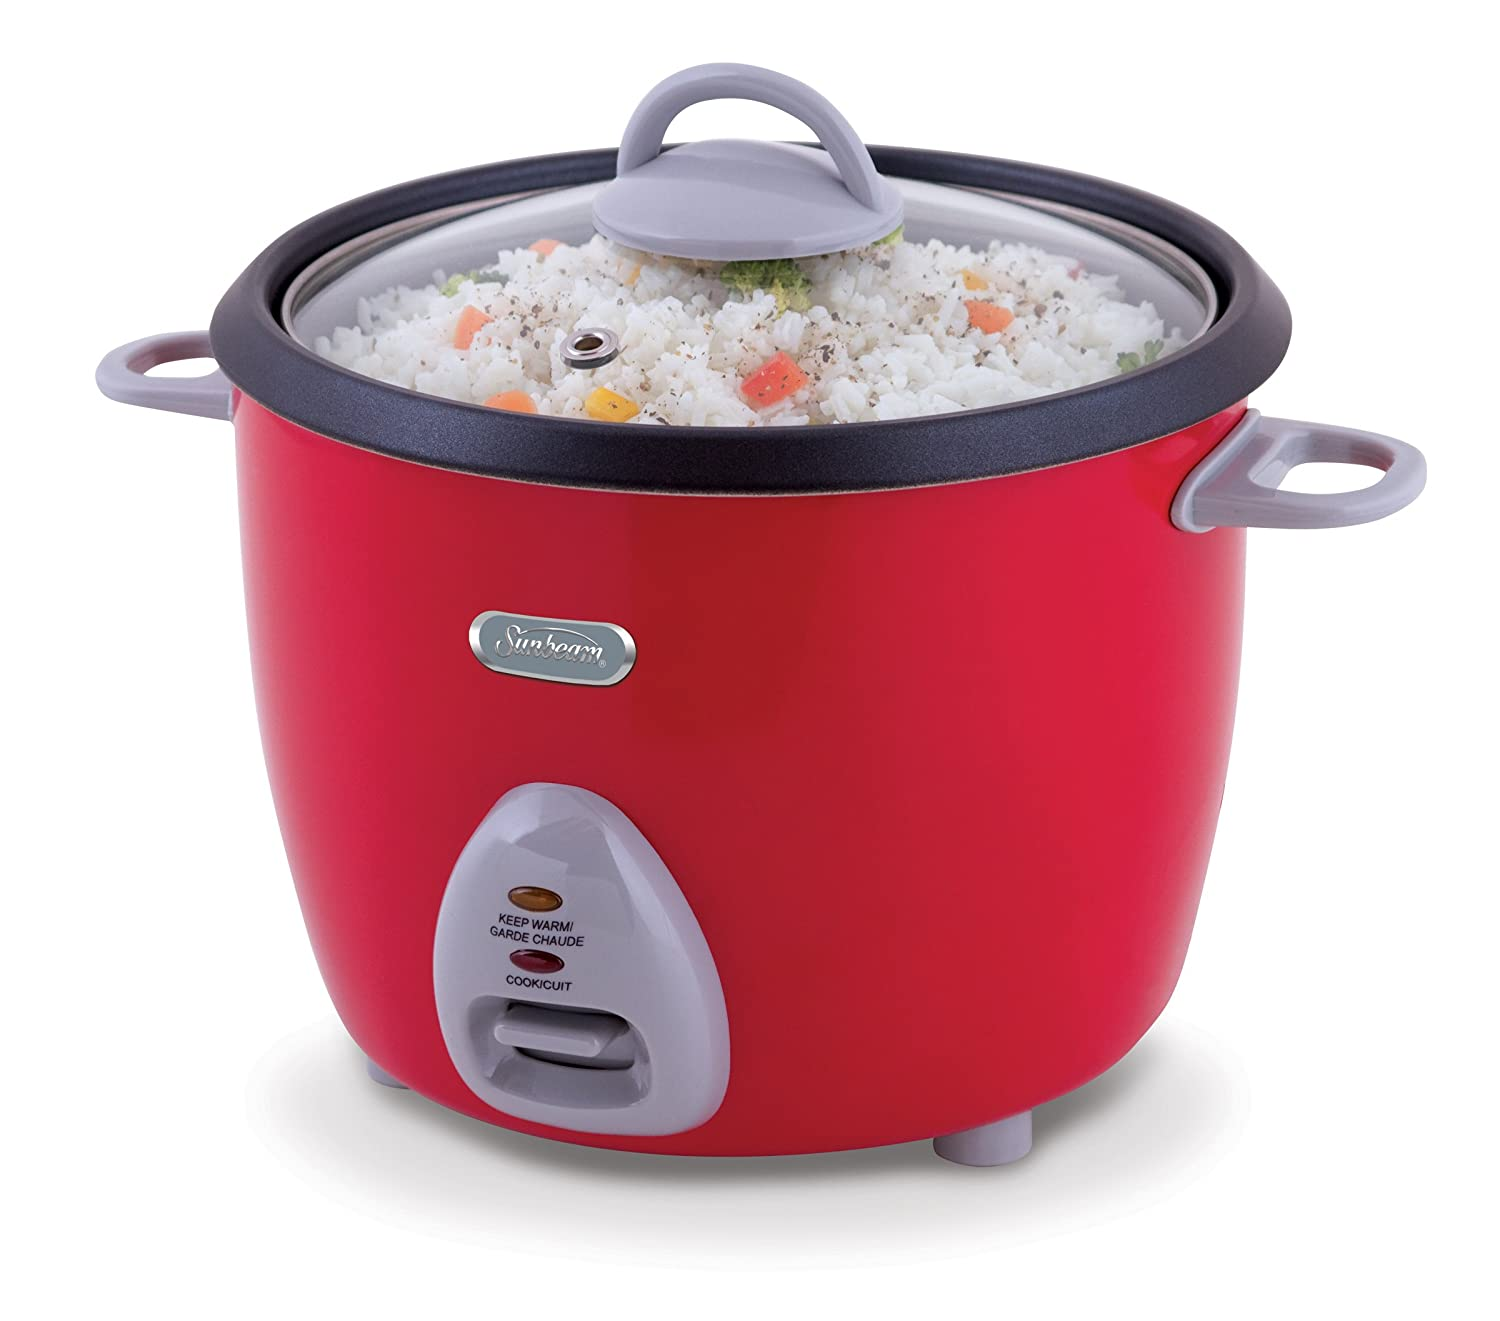 Sunbeam 16-Cup Rice Cooker, Red CKSBRC165-033